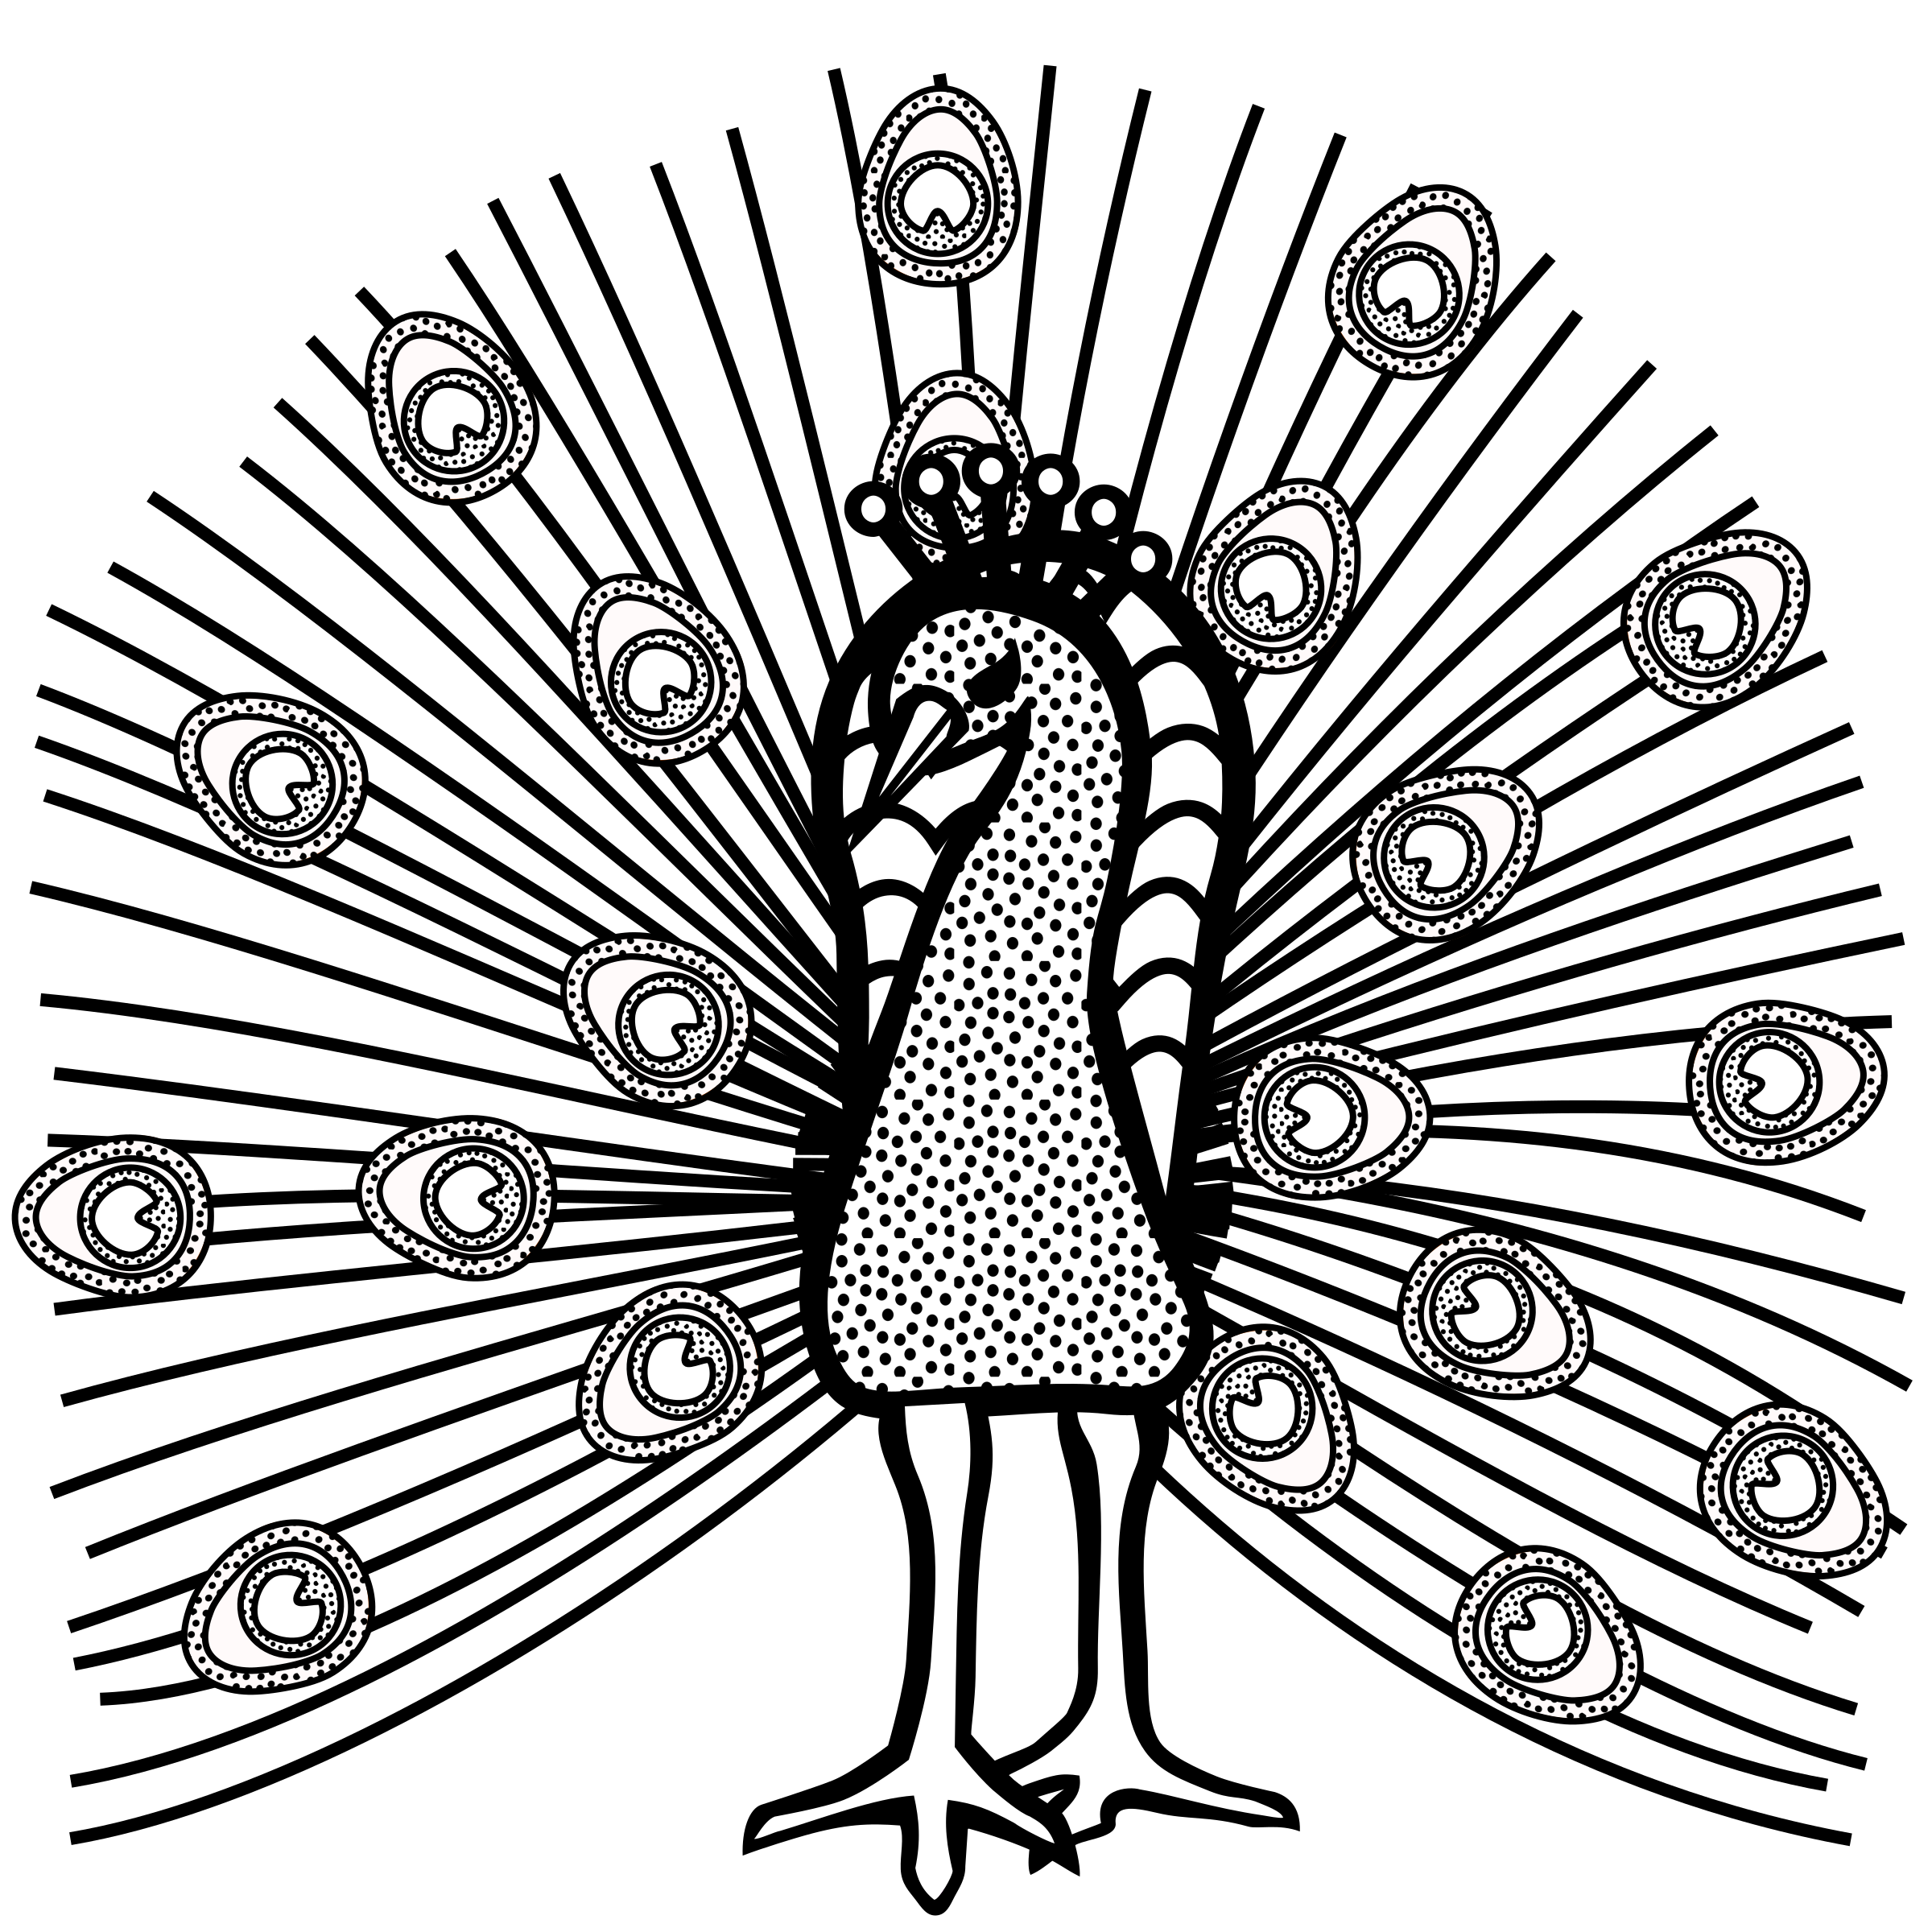 peacock - lineart by frankes